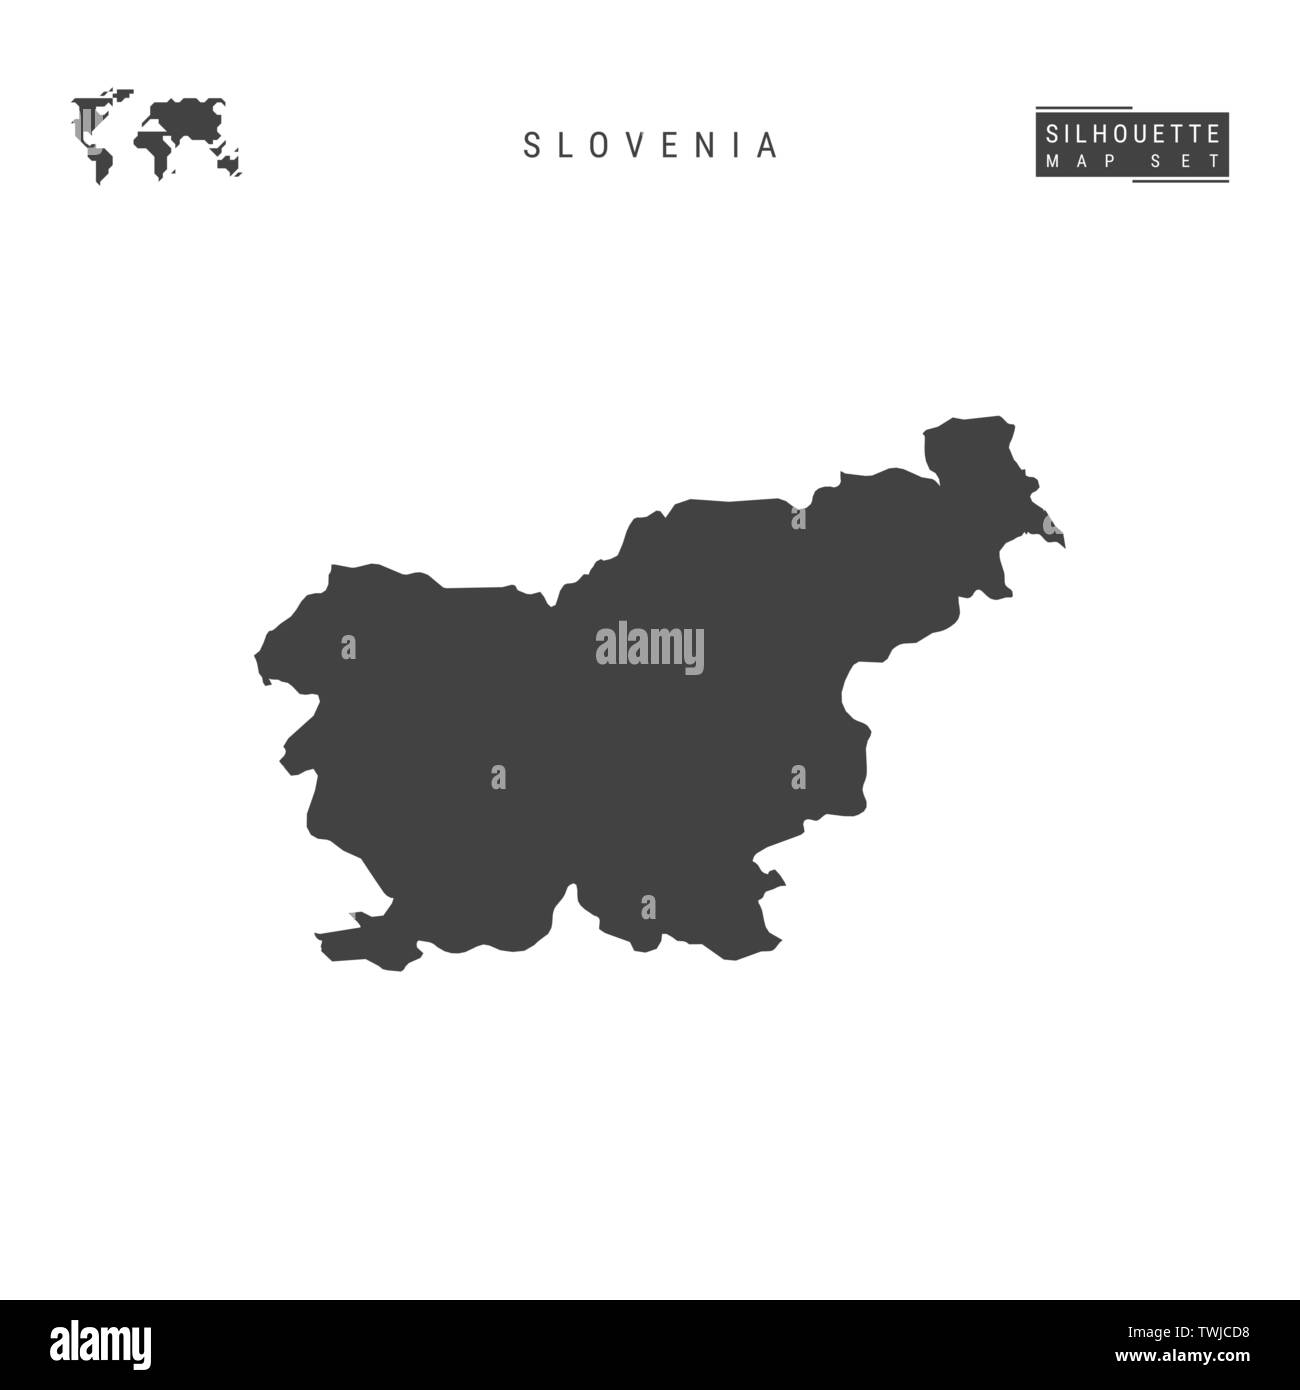 Slovenia Blank Vector Map Isolated on White Background. High-Detailed Black Silhouette Map of Slovenia. - Stock Image